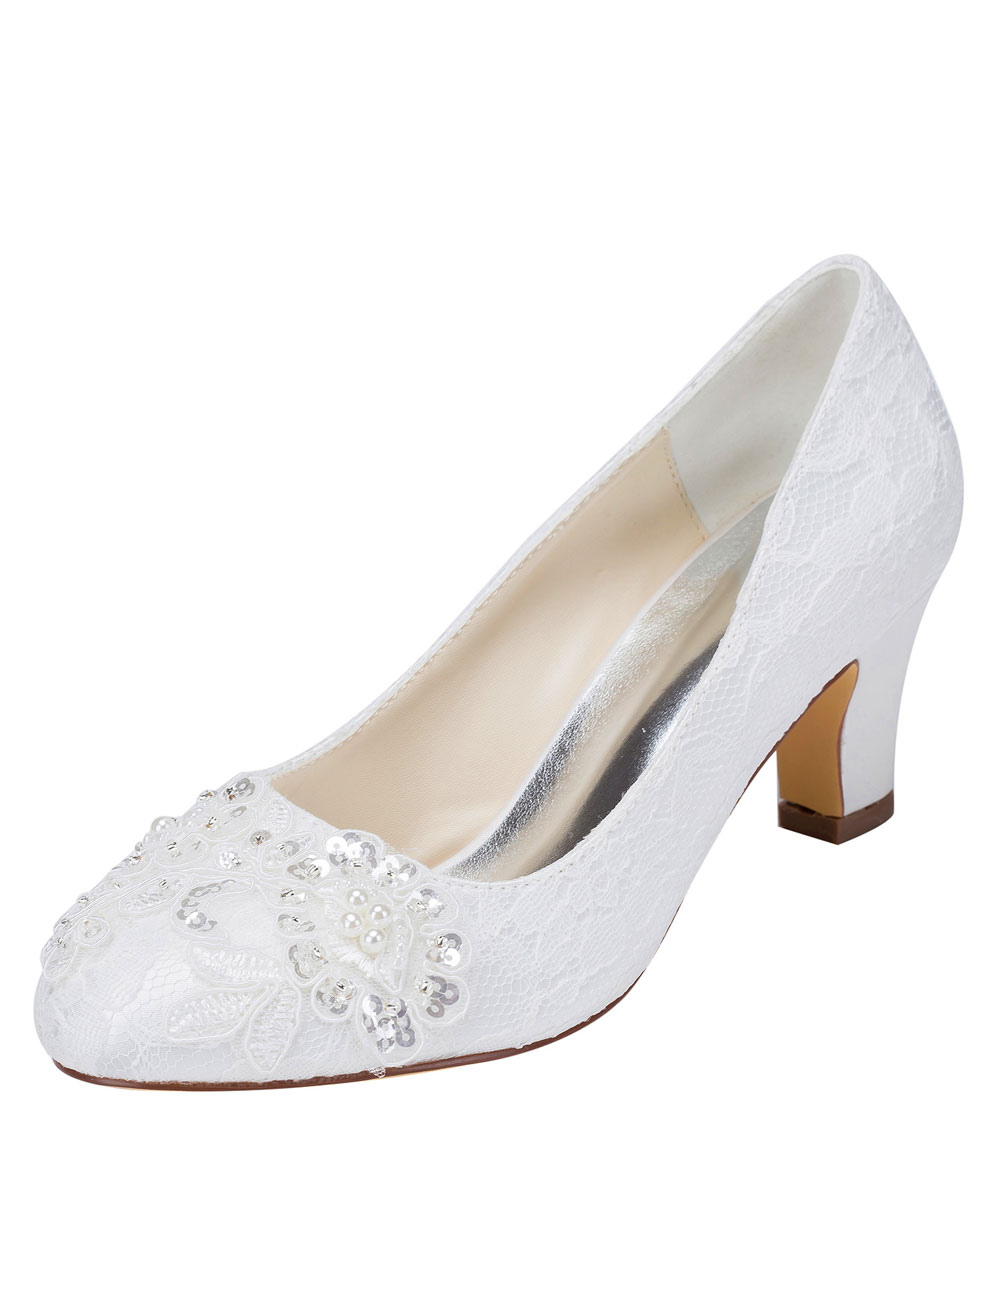 White Wedding Shoes Lace Chunky Heel Slip-on Sequined Pearl Round Toe Bridal Shoes